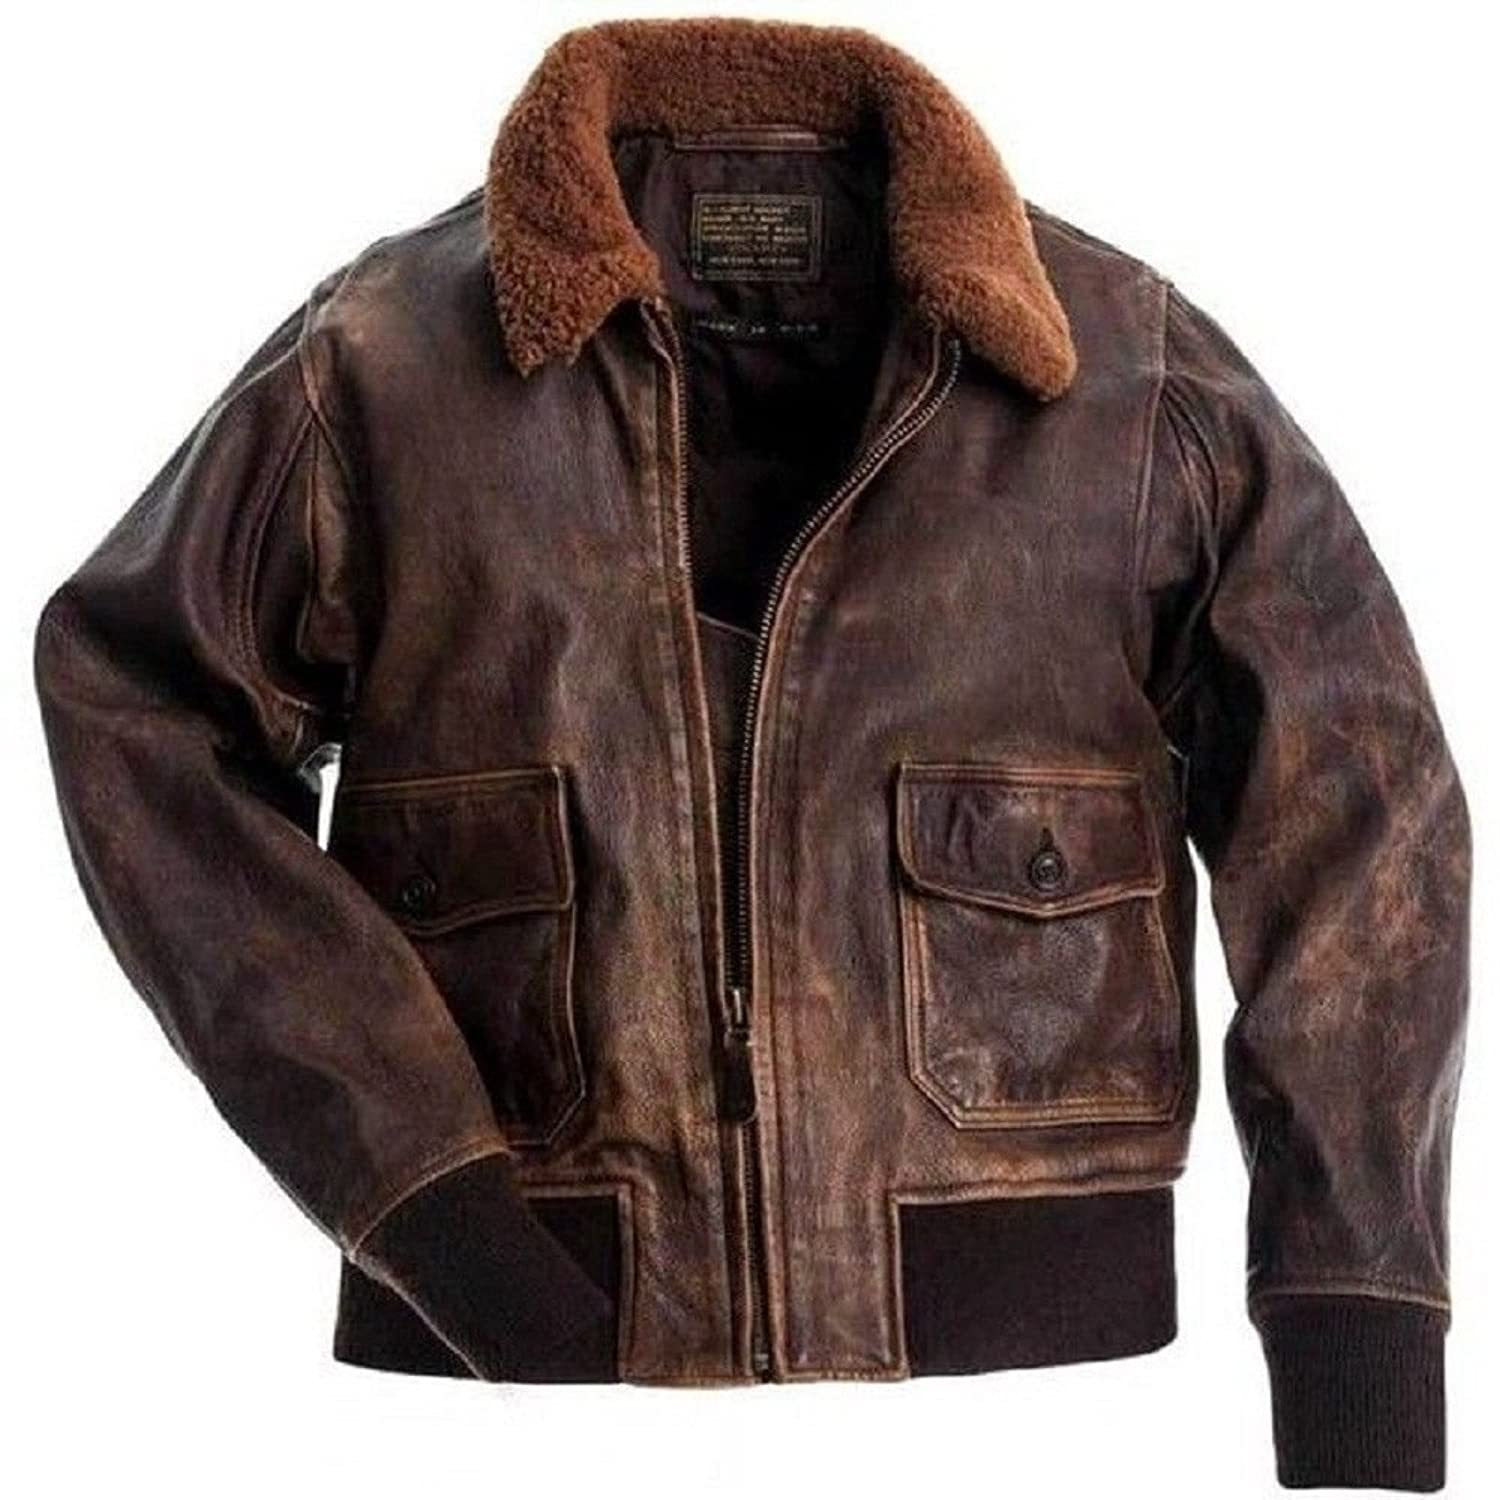 Men's Distressed Aviator Brown Leather Bomber Jacket - DeluxeAdultCostumes.com